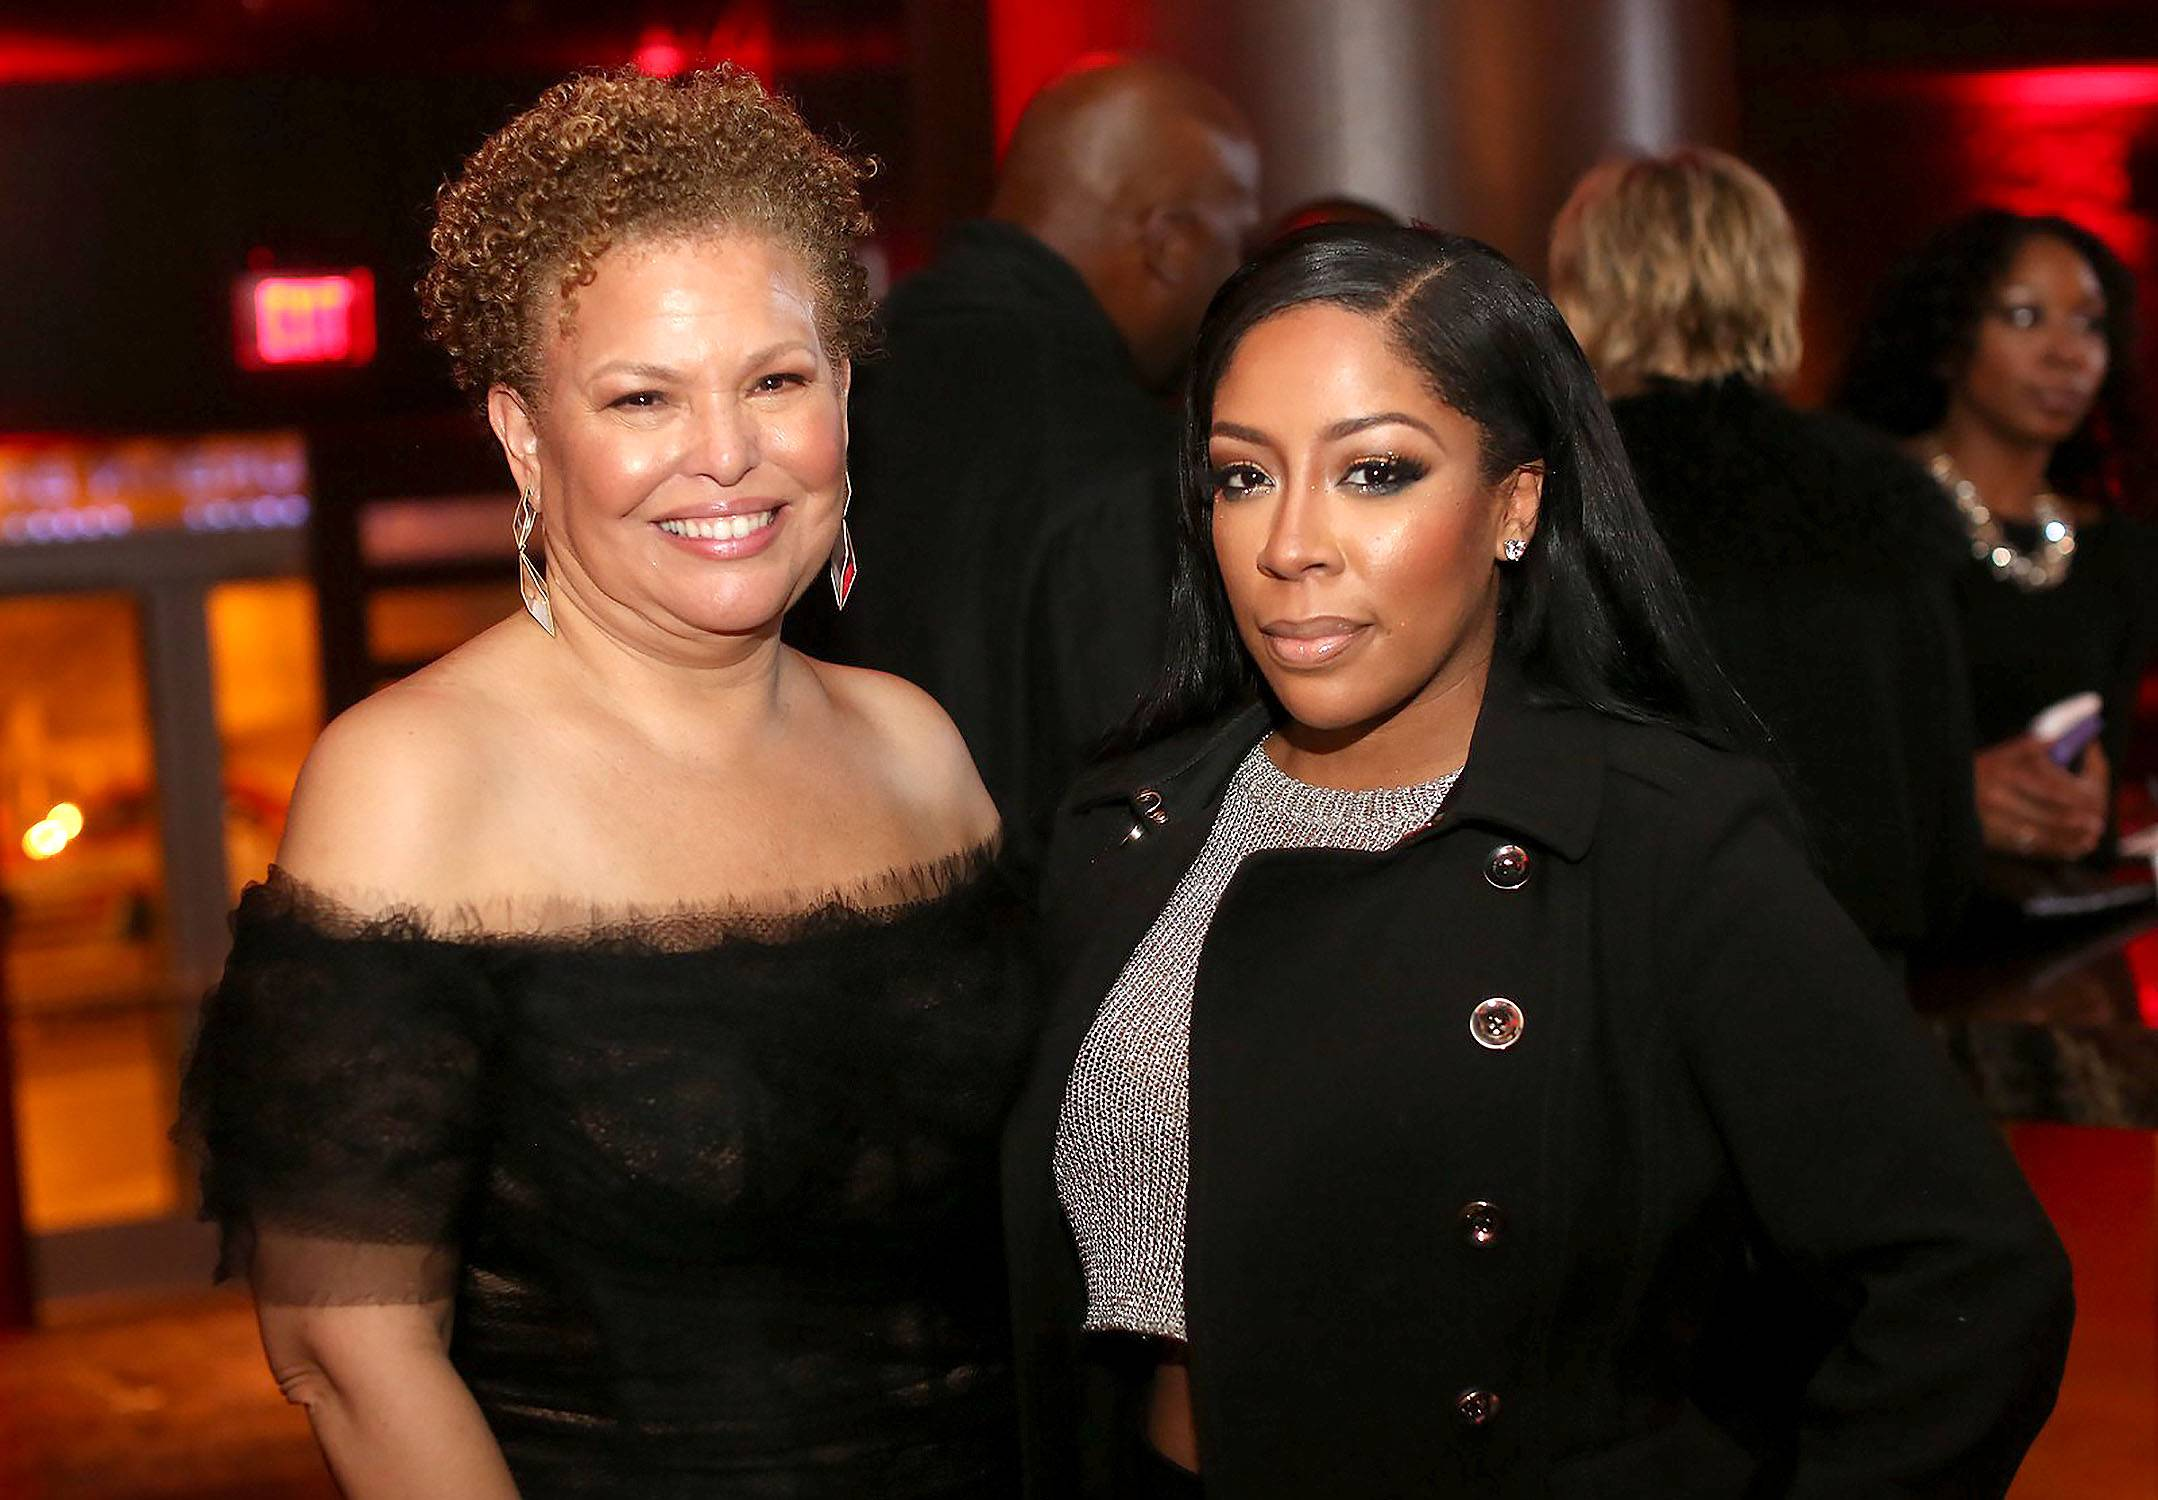 Divas Simply Be Great - Debra Lee and K. Michelleshare in a beautiful moment.(Photo: Phelan Marc/BET)